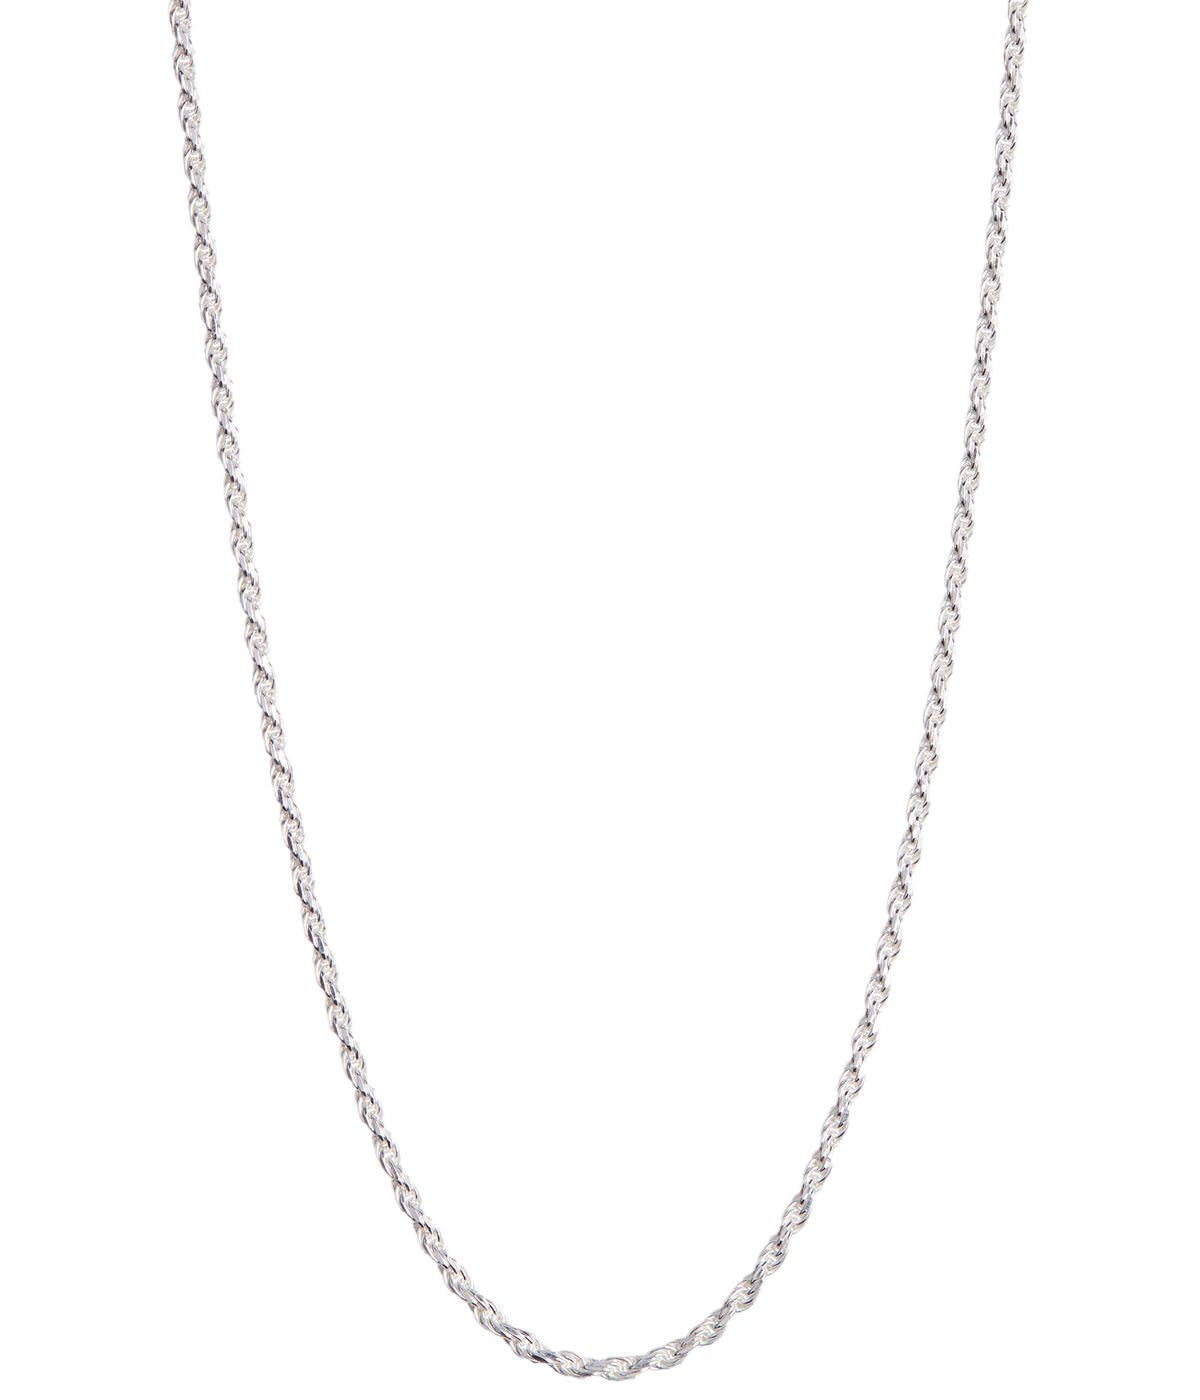 Italian .925 Sterling Silver 1.5mm Rope Chain Necklace (26)